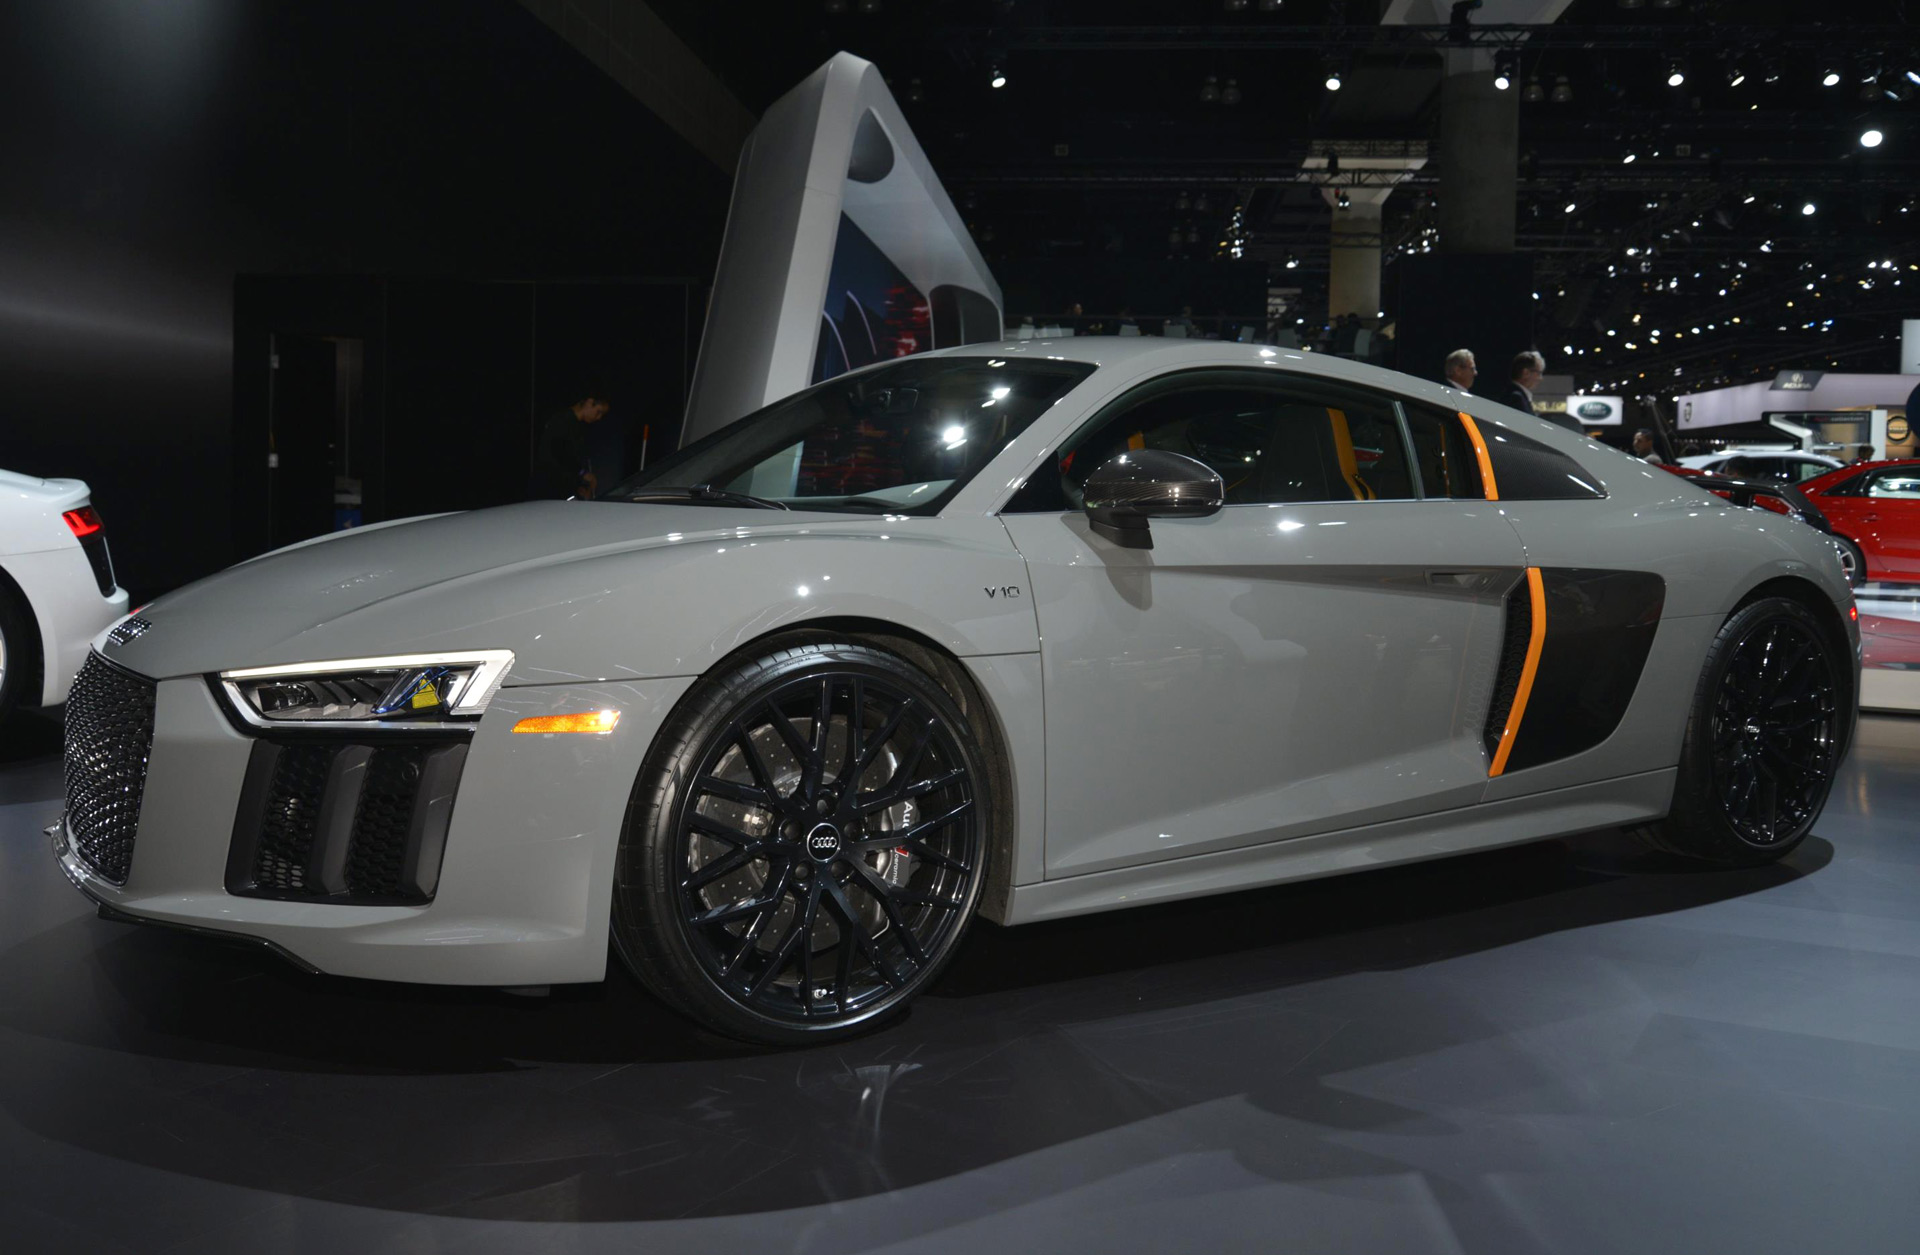 special edition audi r8 v10 plus comes with laser headlights